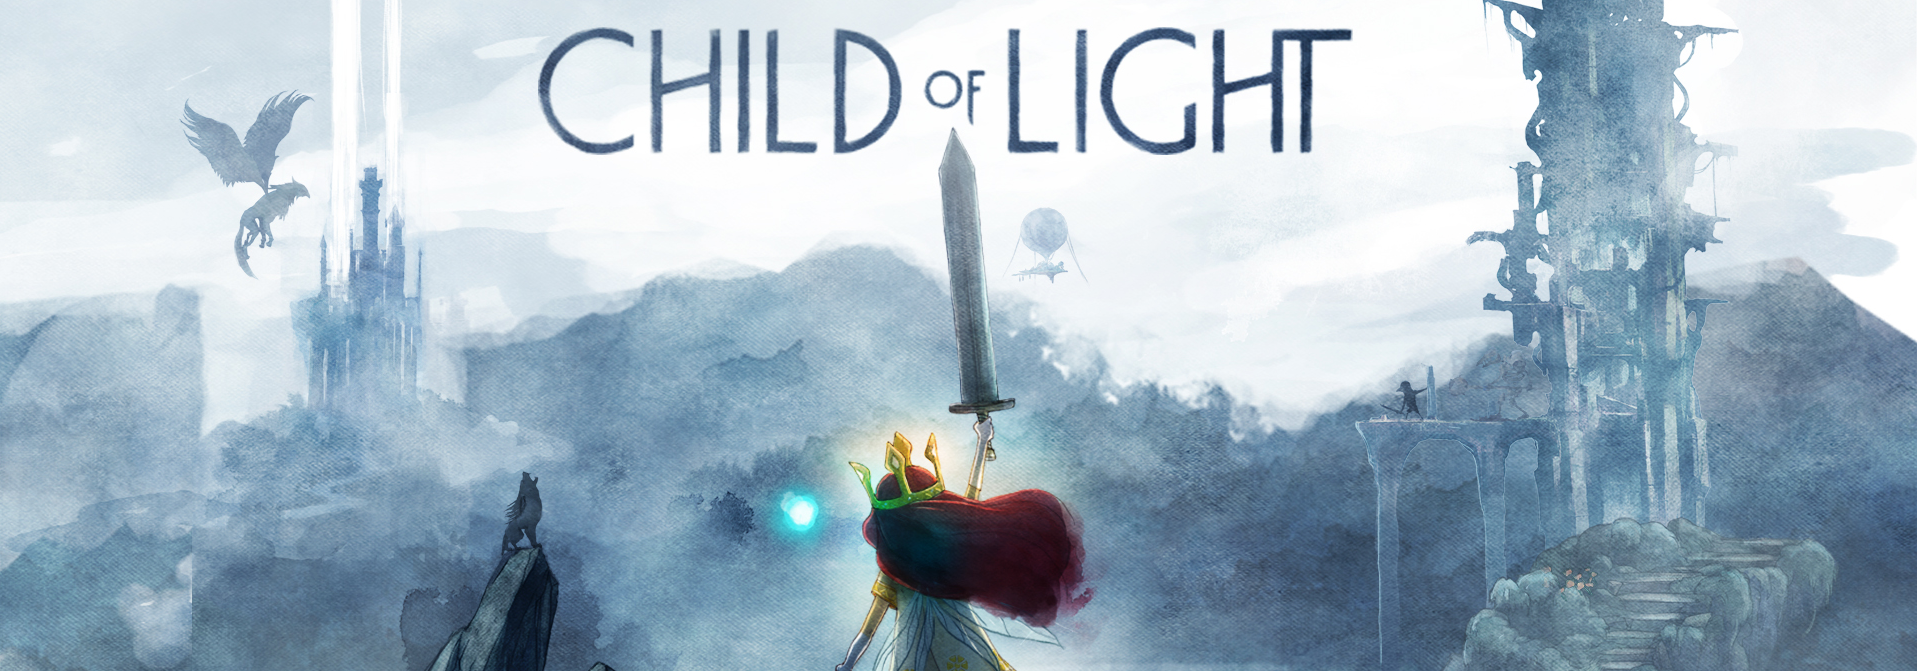 Bàn về Child of light